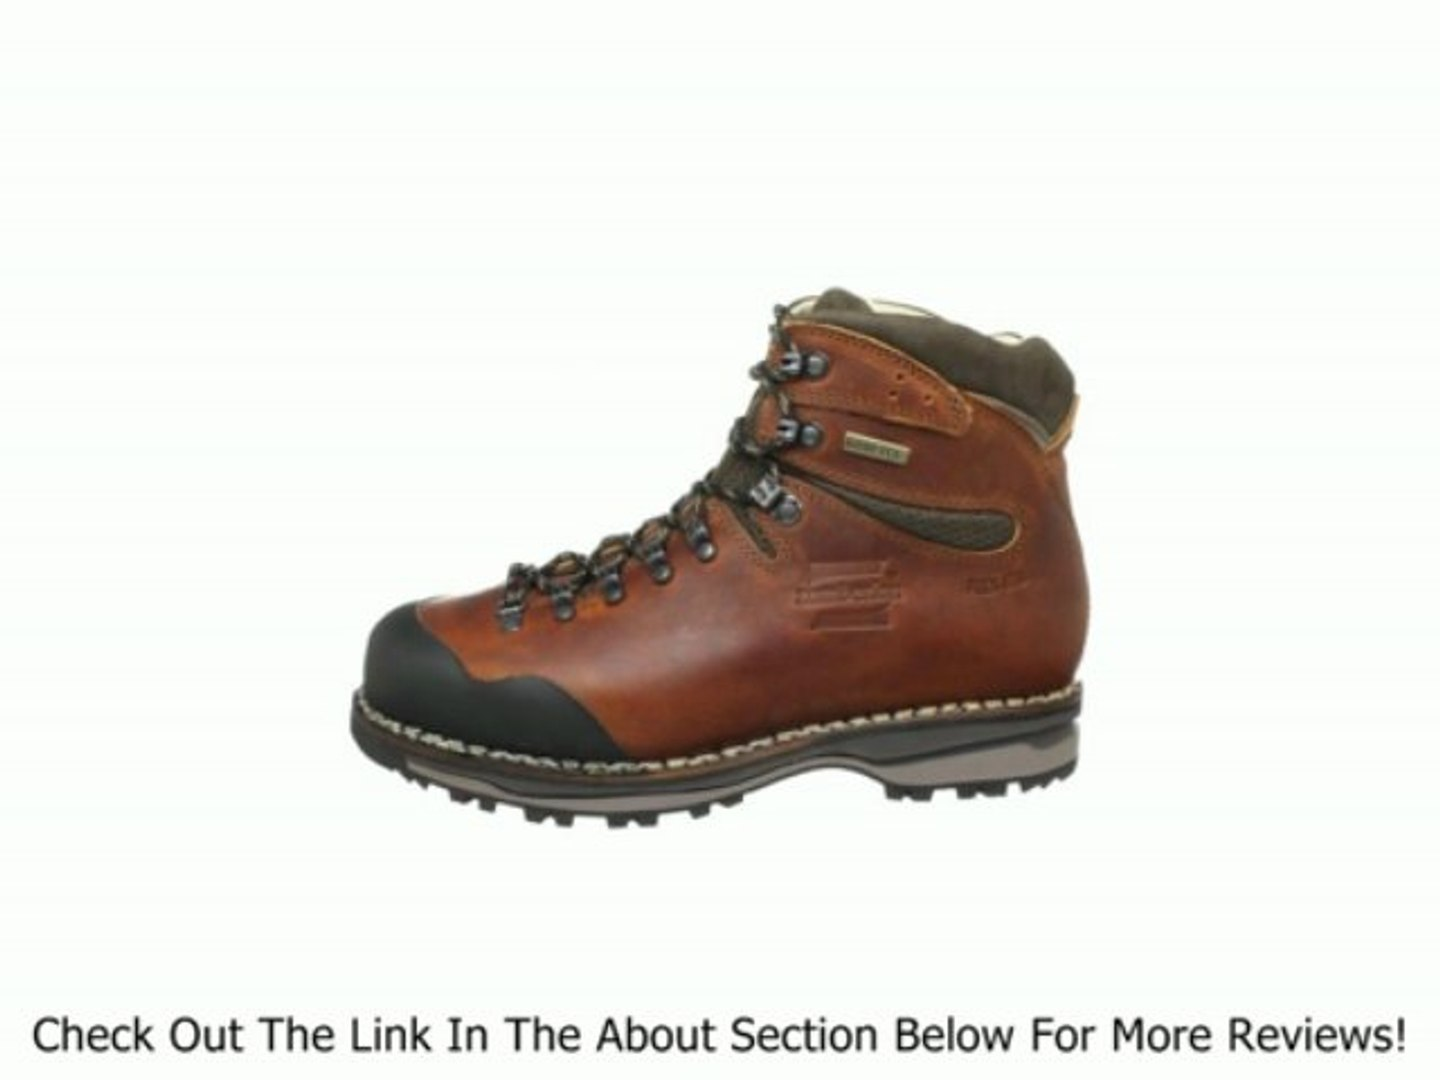 4ea14b74648 Zamberlan Men's 1025 Tofane NW GT RR Hiking Boot Review